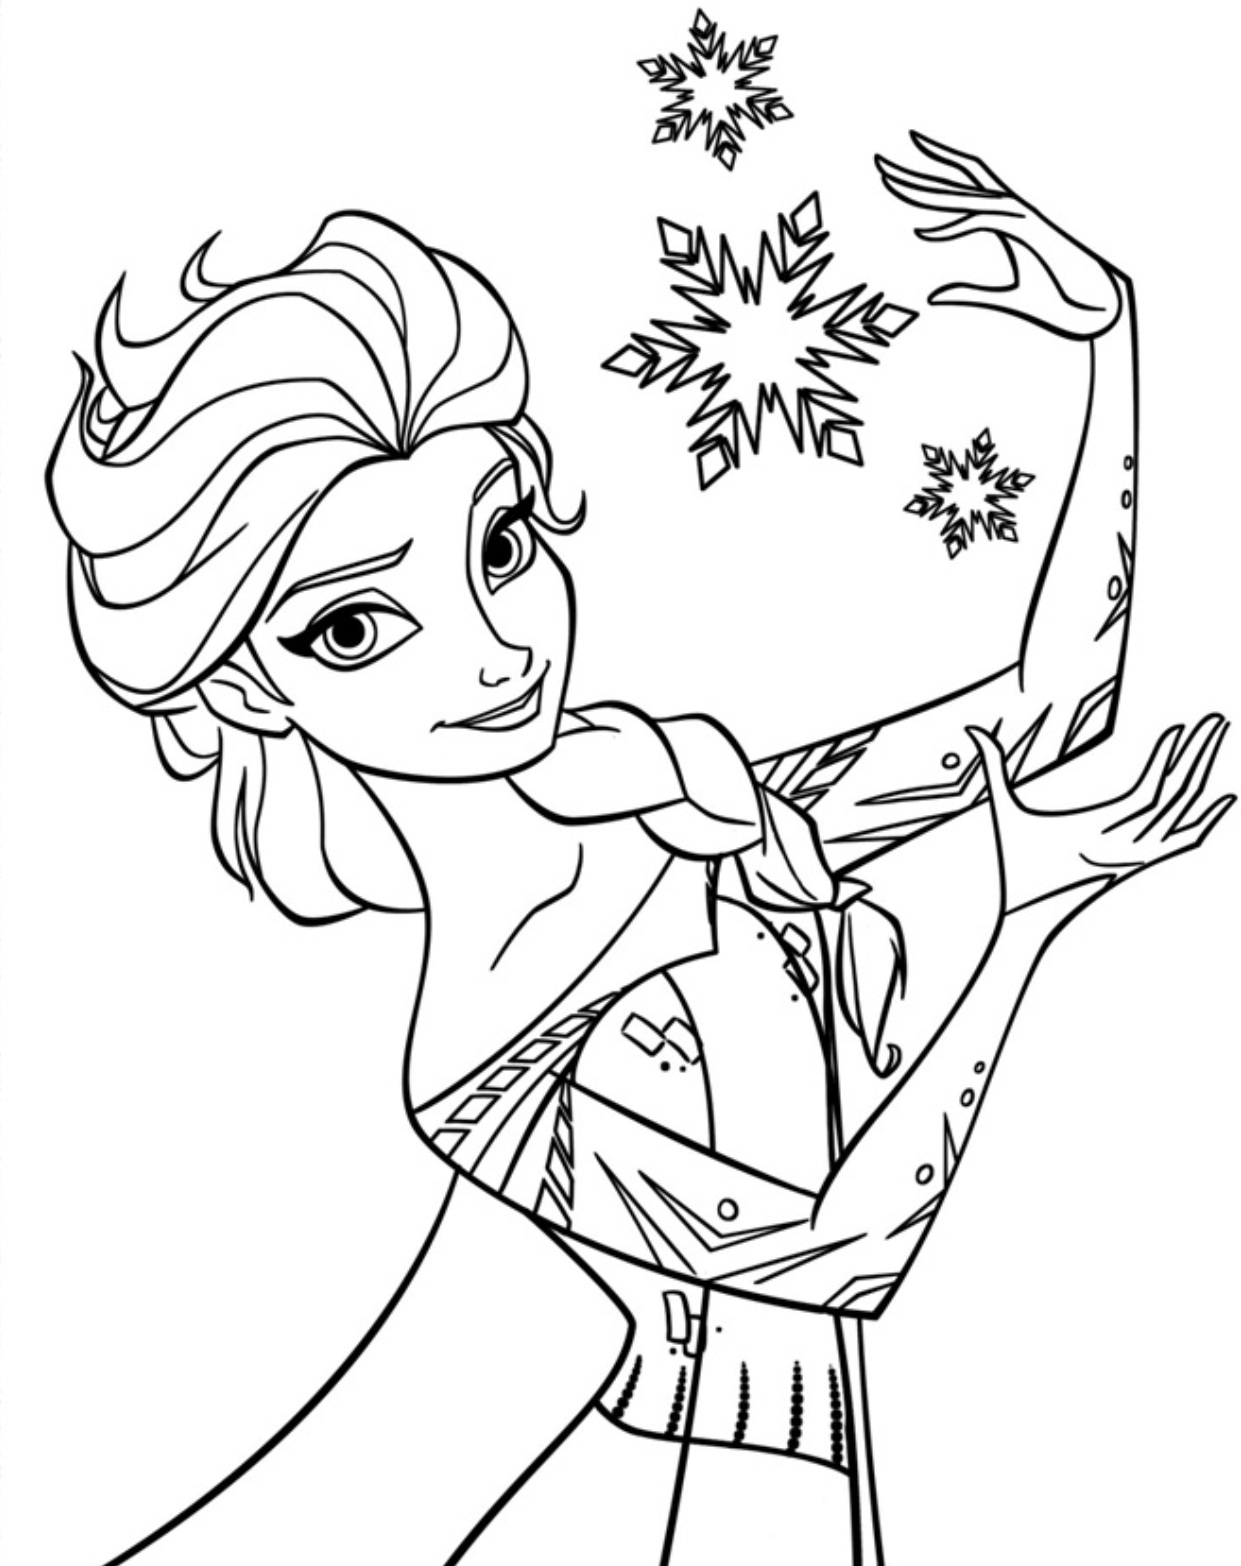 coloring picture printable free printable cinderella activity sheets and coloring picture coloring printable